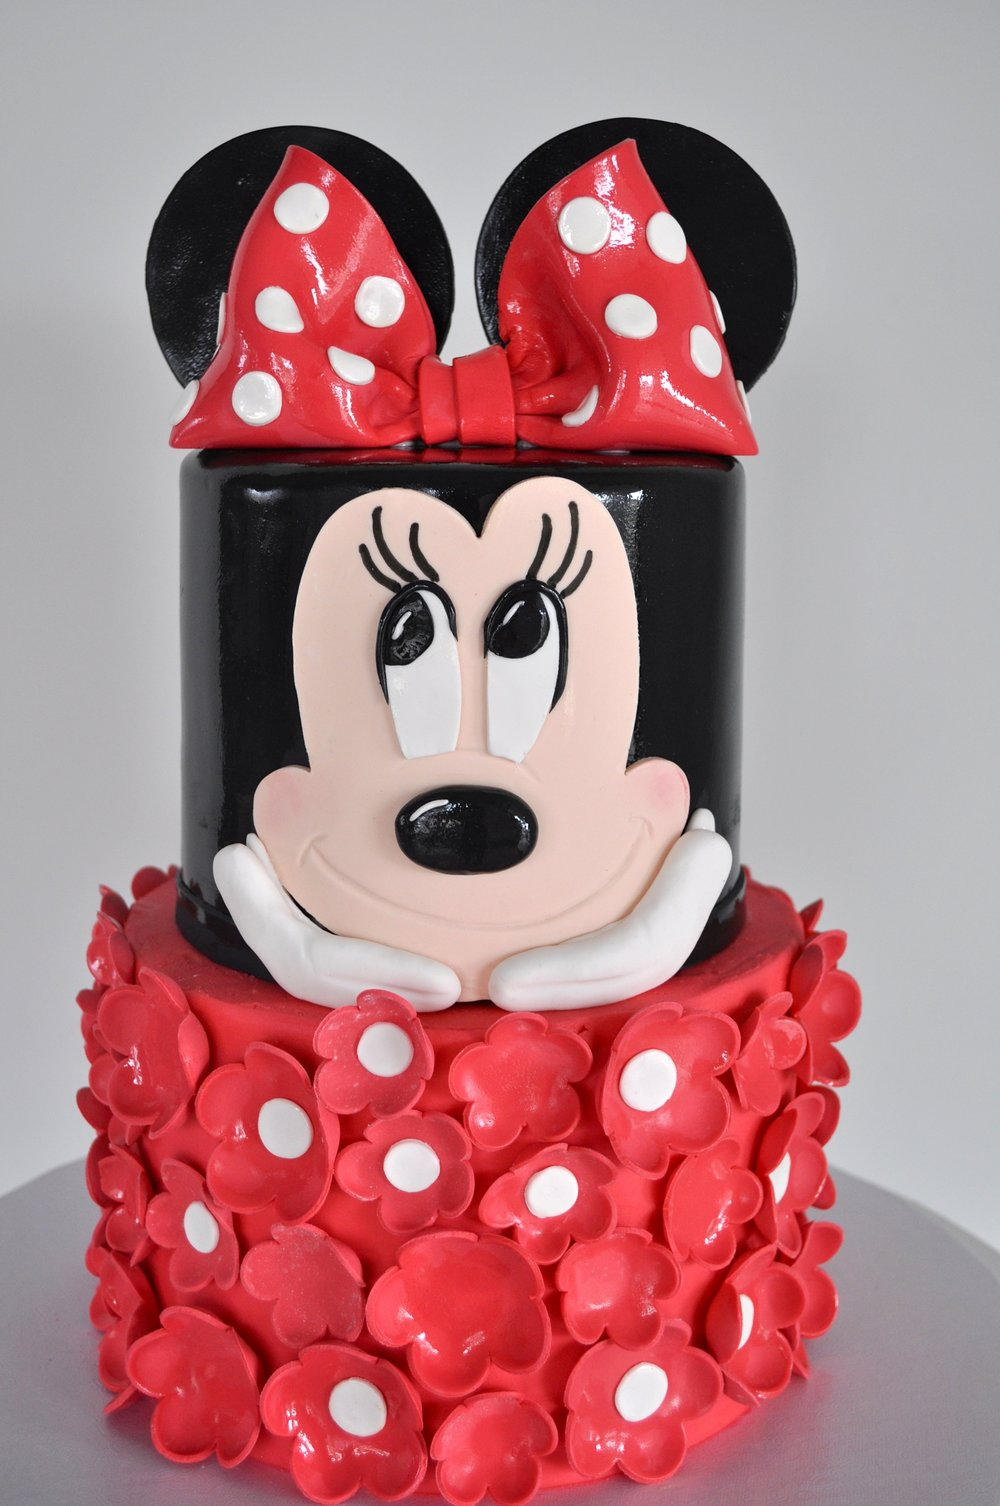 custom-cake-minniemouse-flower-sugarbeesweets.jpg